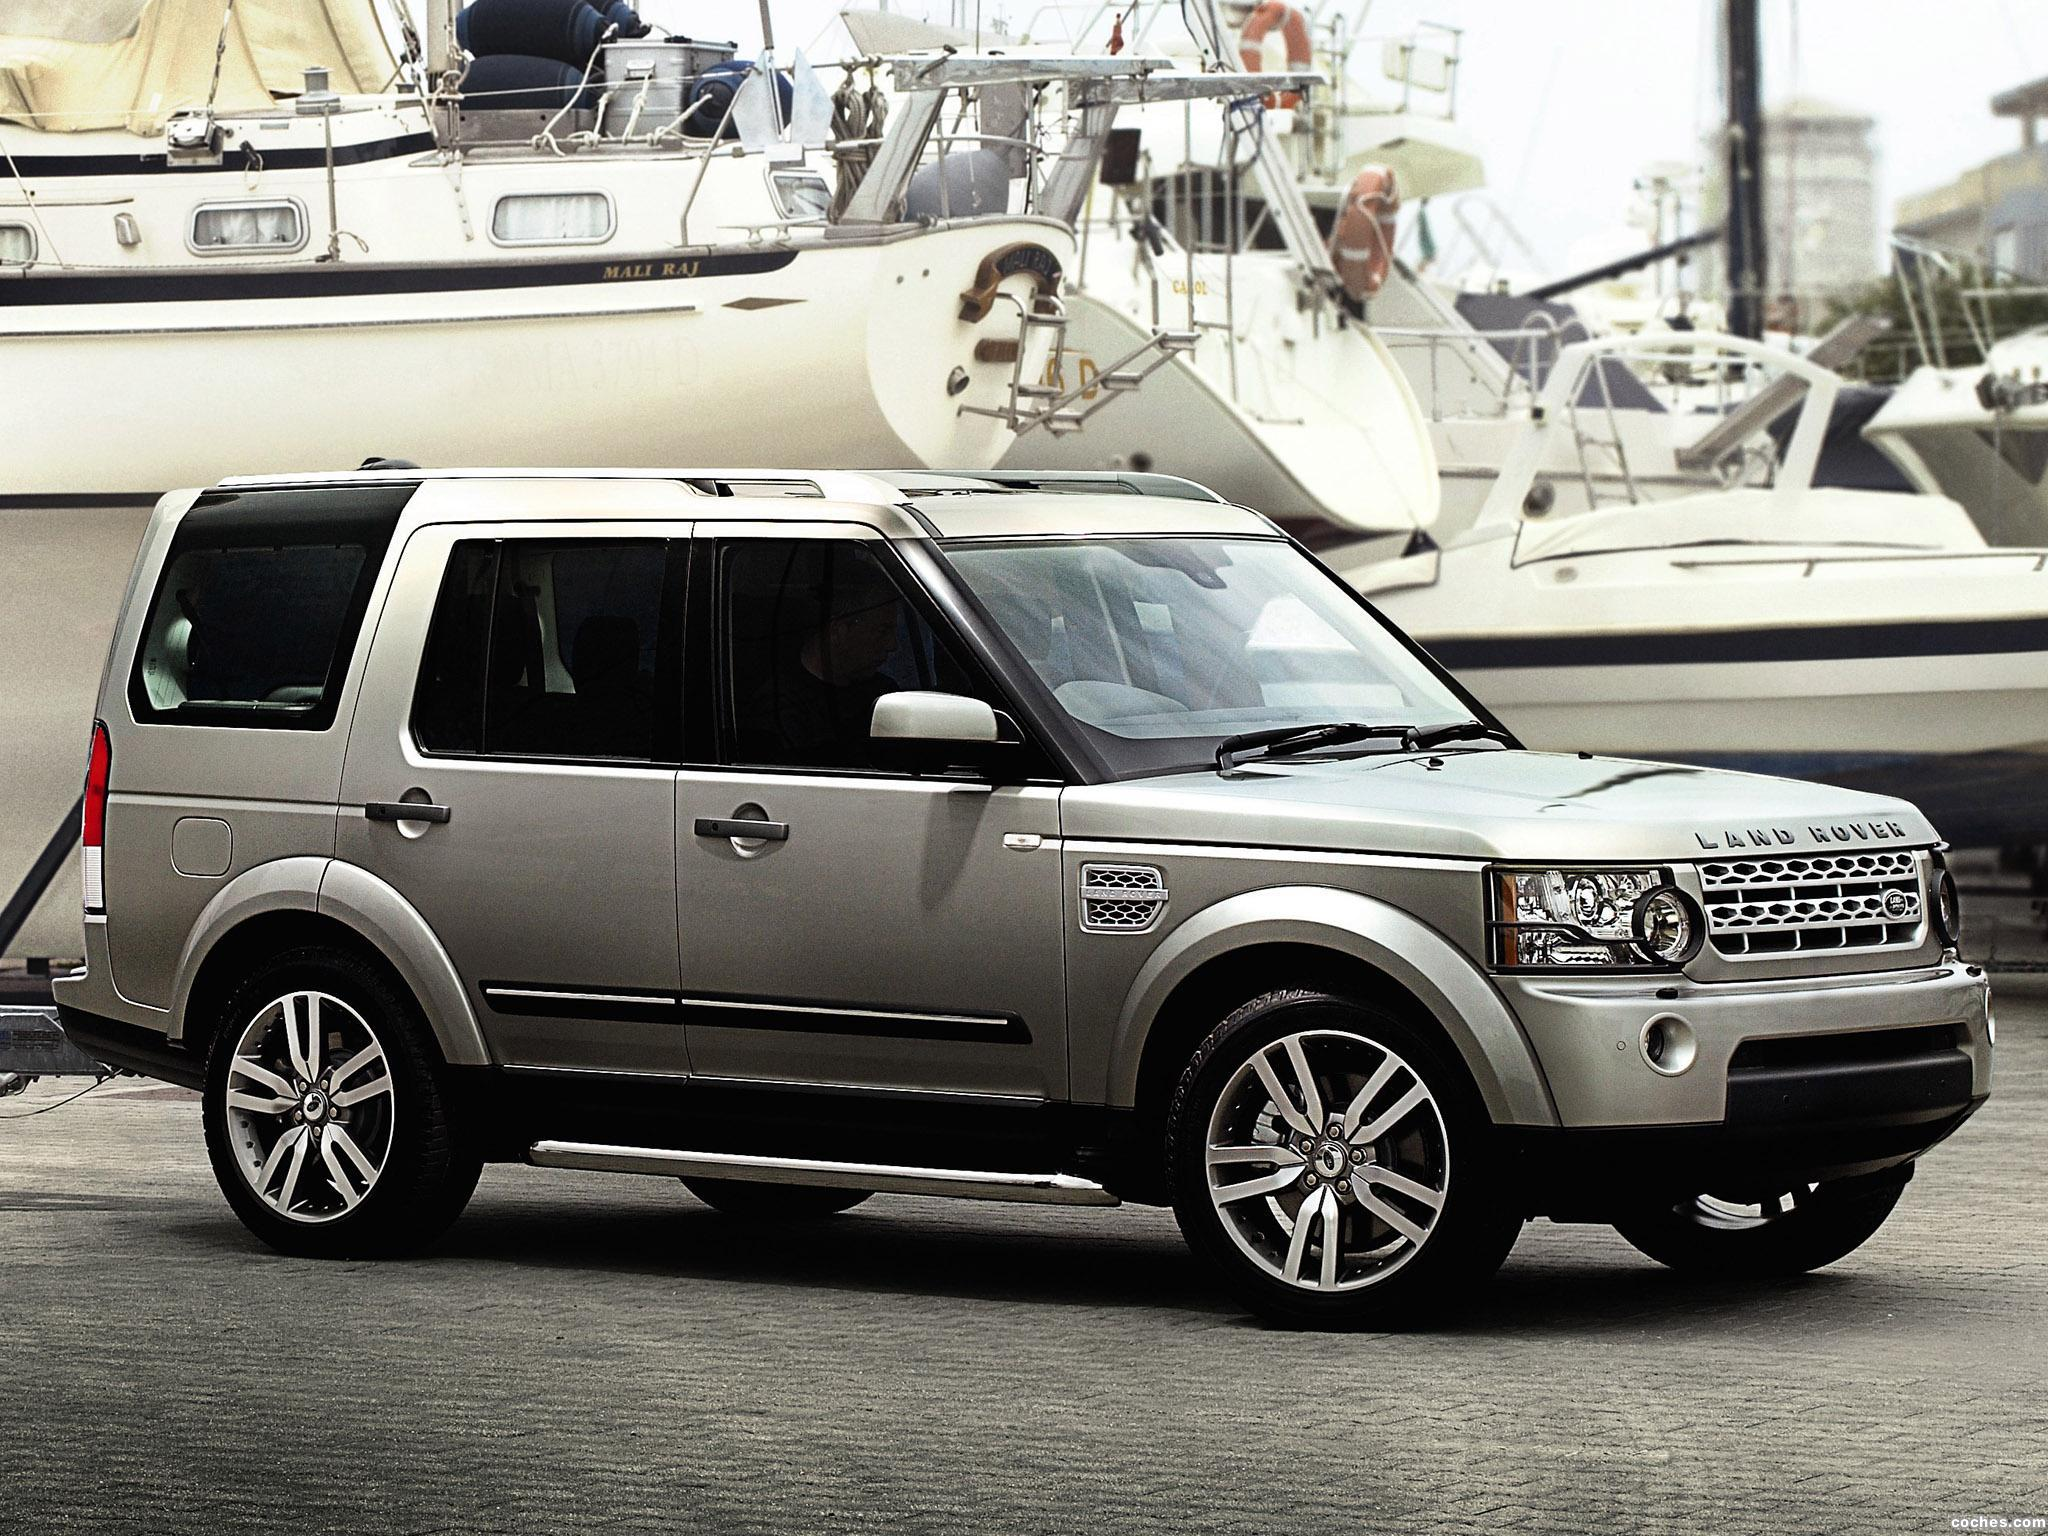 landrover_discovery-4-2011_r10.jpg